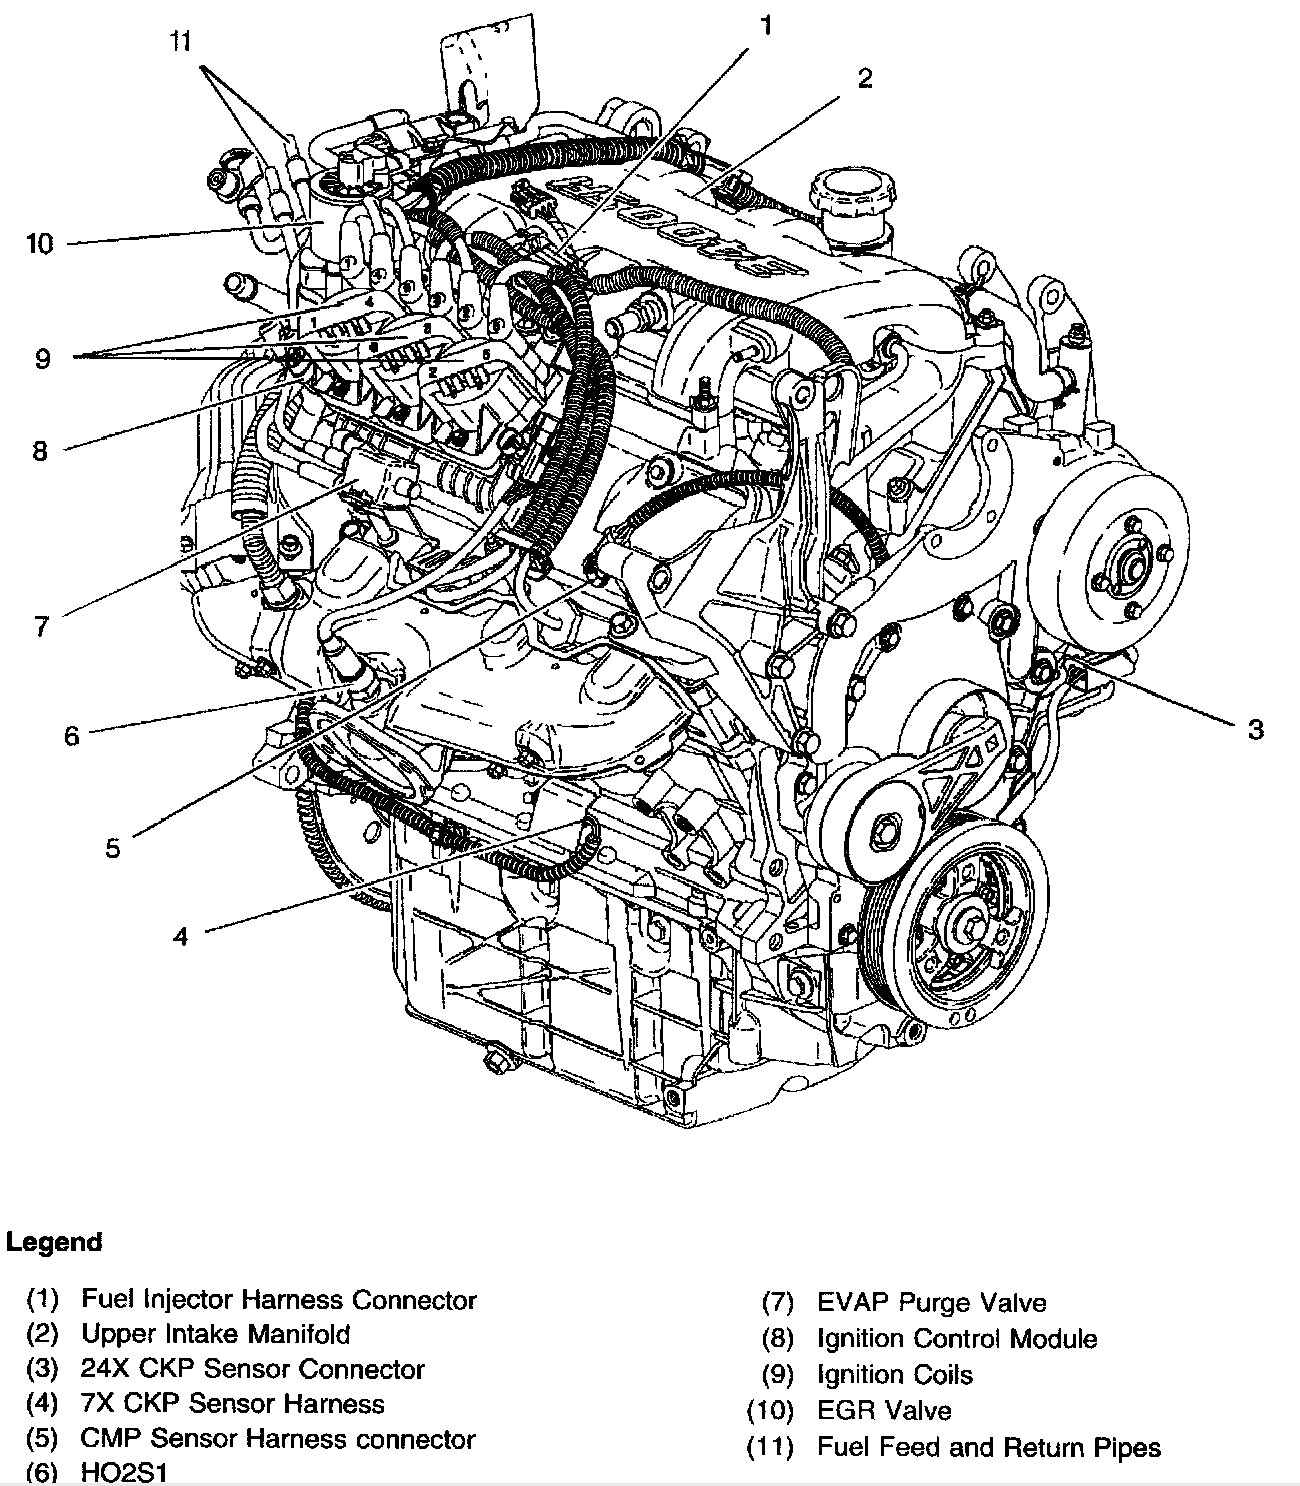 Chevy Cavalier Engine Diagram Charging System Putting Volt 3400 Front Diagrams Pinterest Of